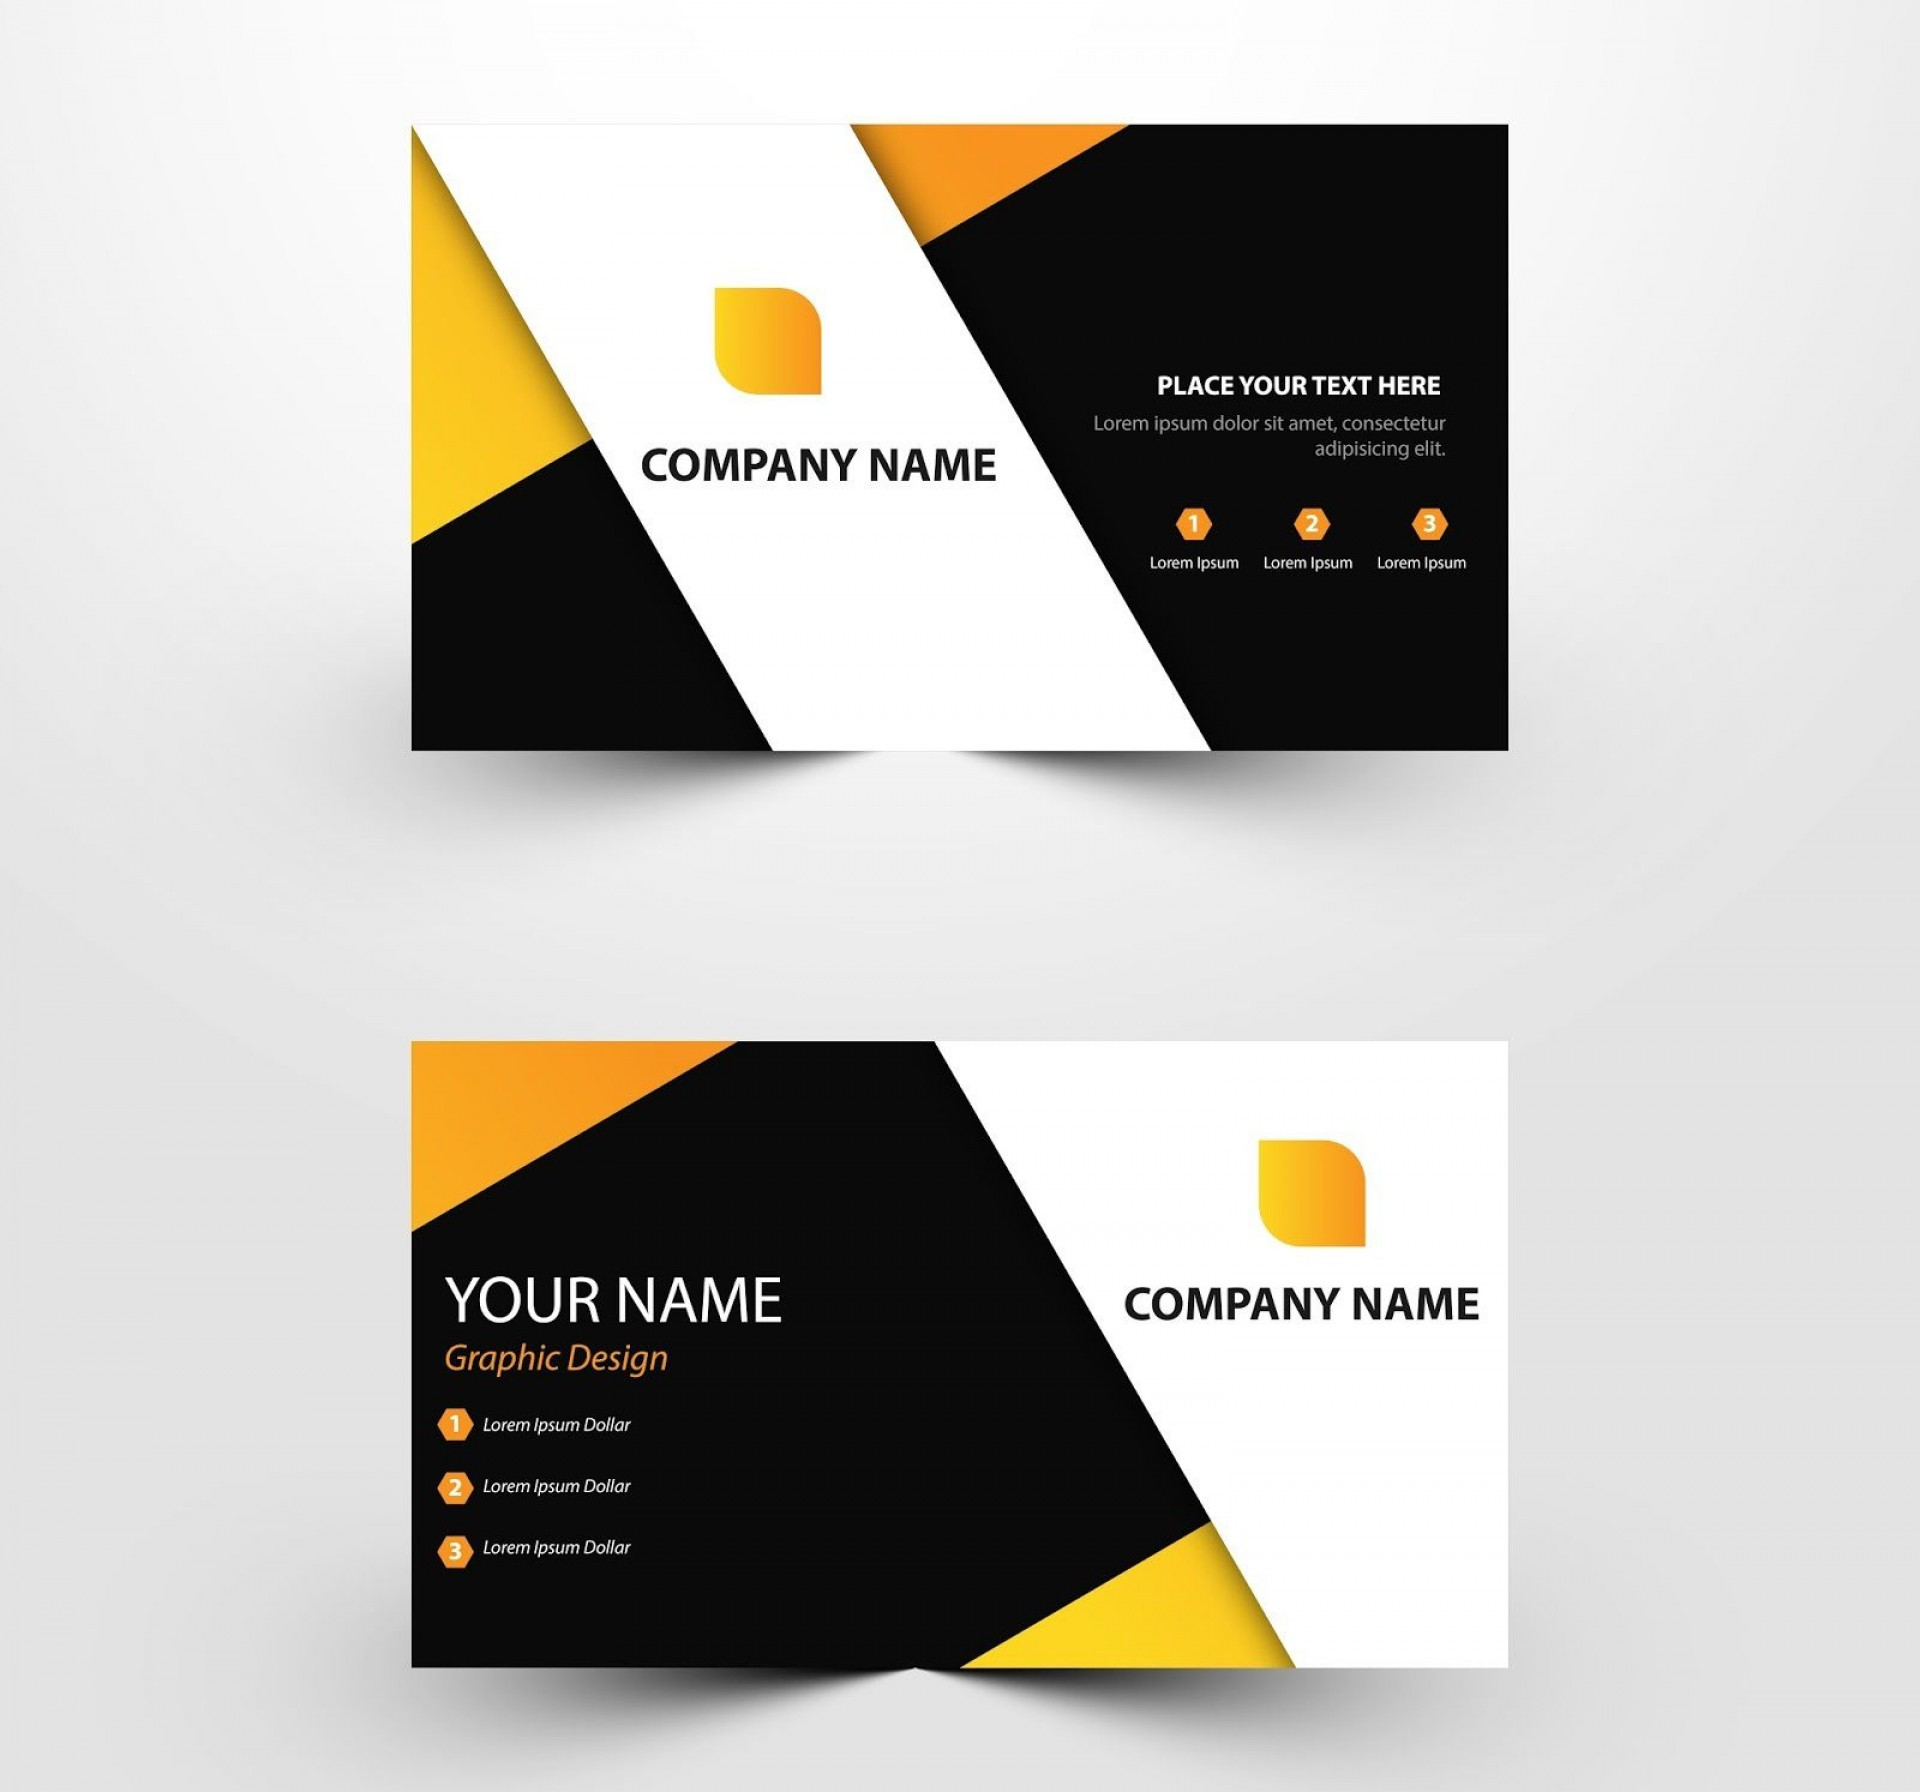 009 Unique Free Photoshop Busines Card Template Download Highest Clarity  Adobe Psd Visiting Design1920